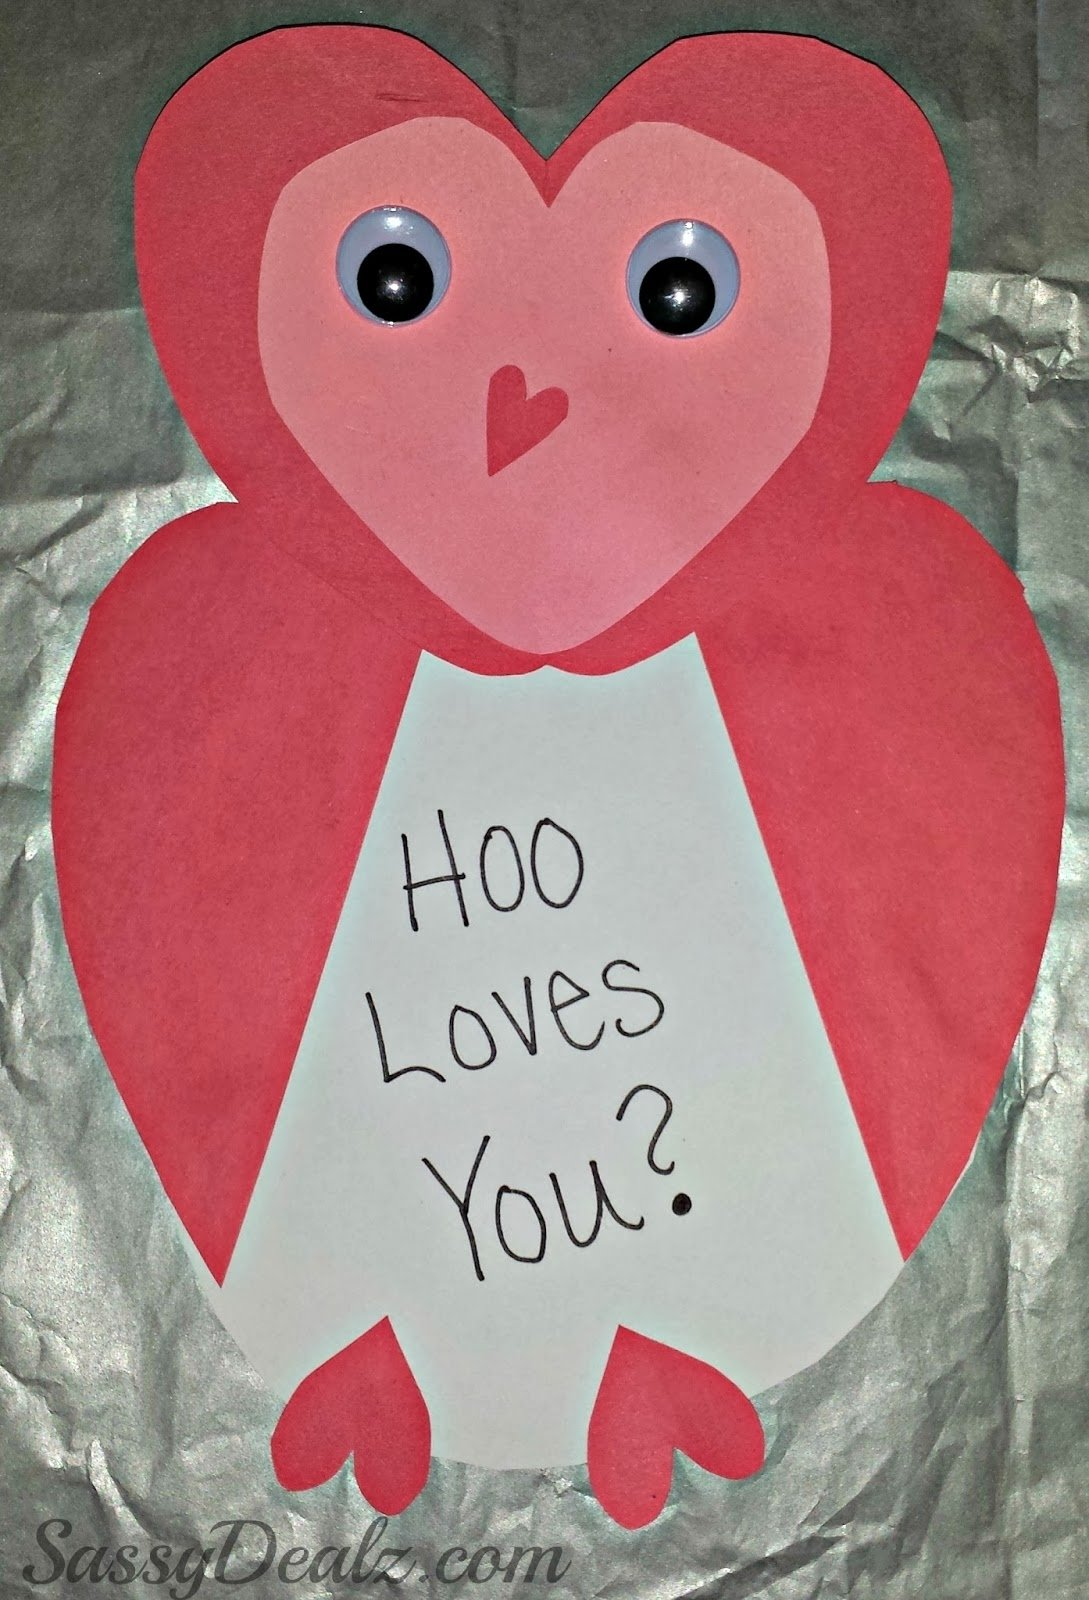 10 Fashionable Valentine Day Card Ideas Homemade owl valentines day card idea for kids crafty morning 4 2020